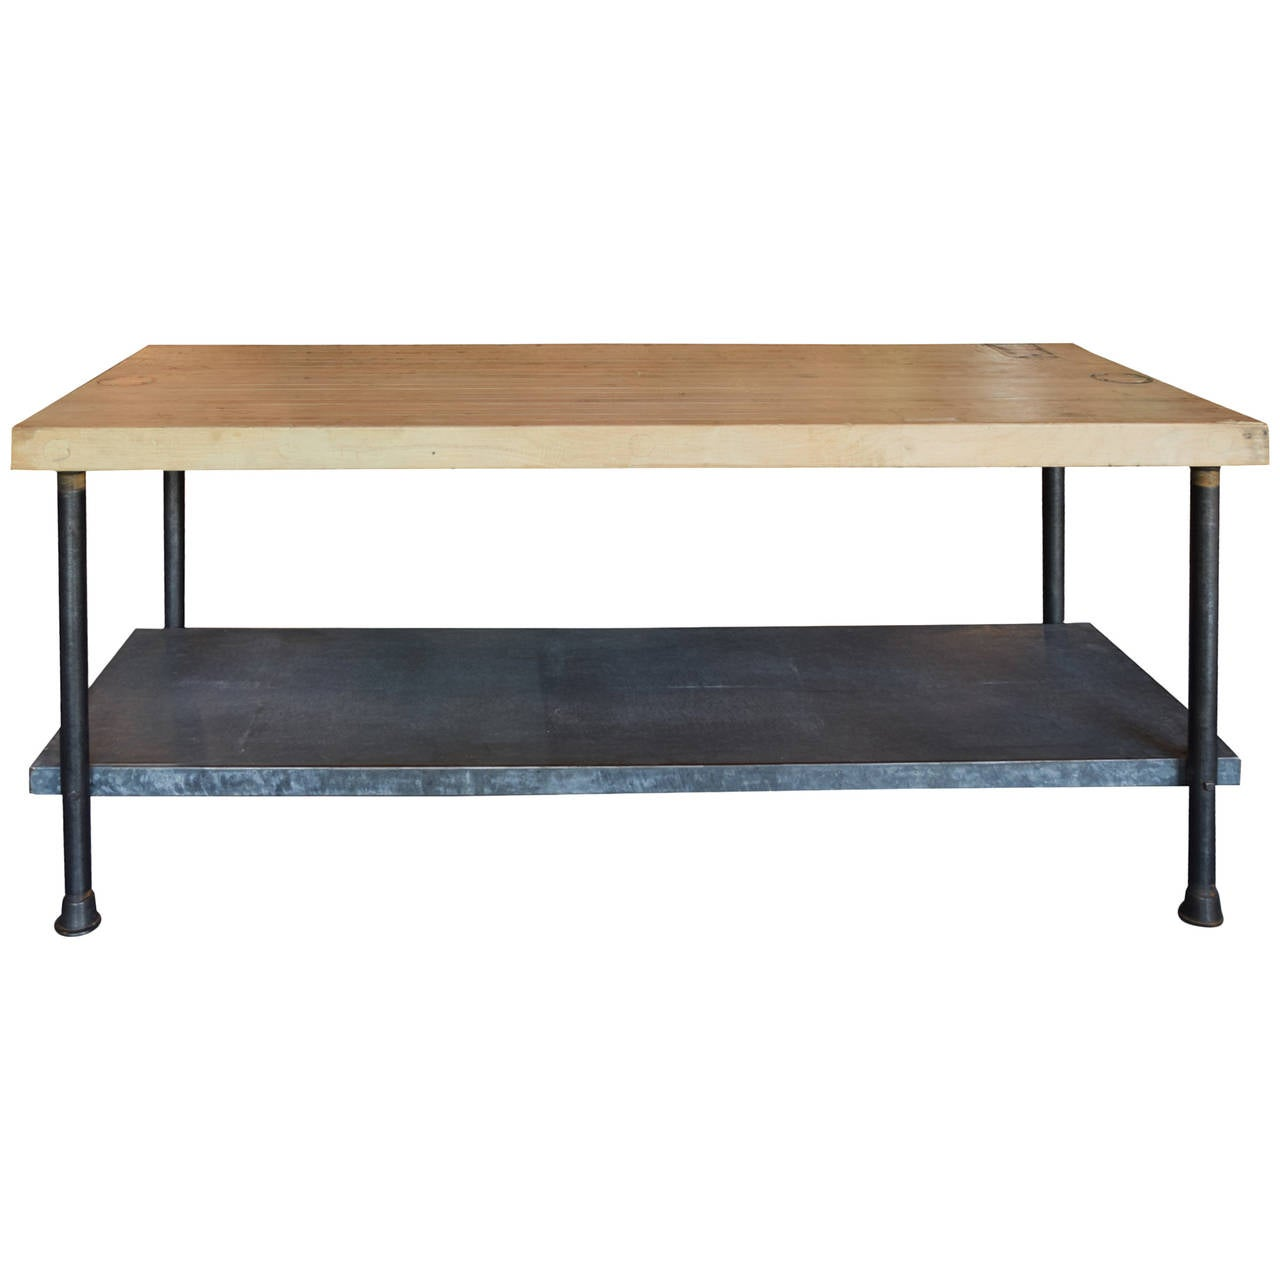 Industrial Work Table at 1stdibs : 2764052l from www.1stdibs.com size 1280 x 1280 jpeg 57kB